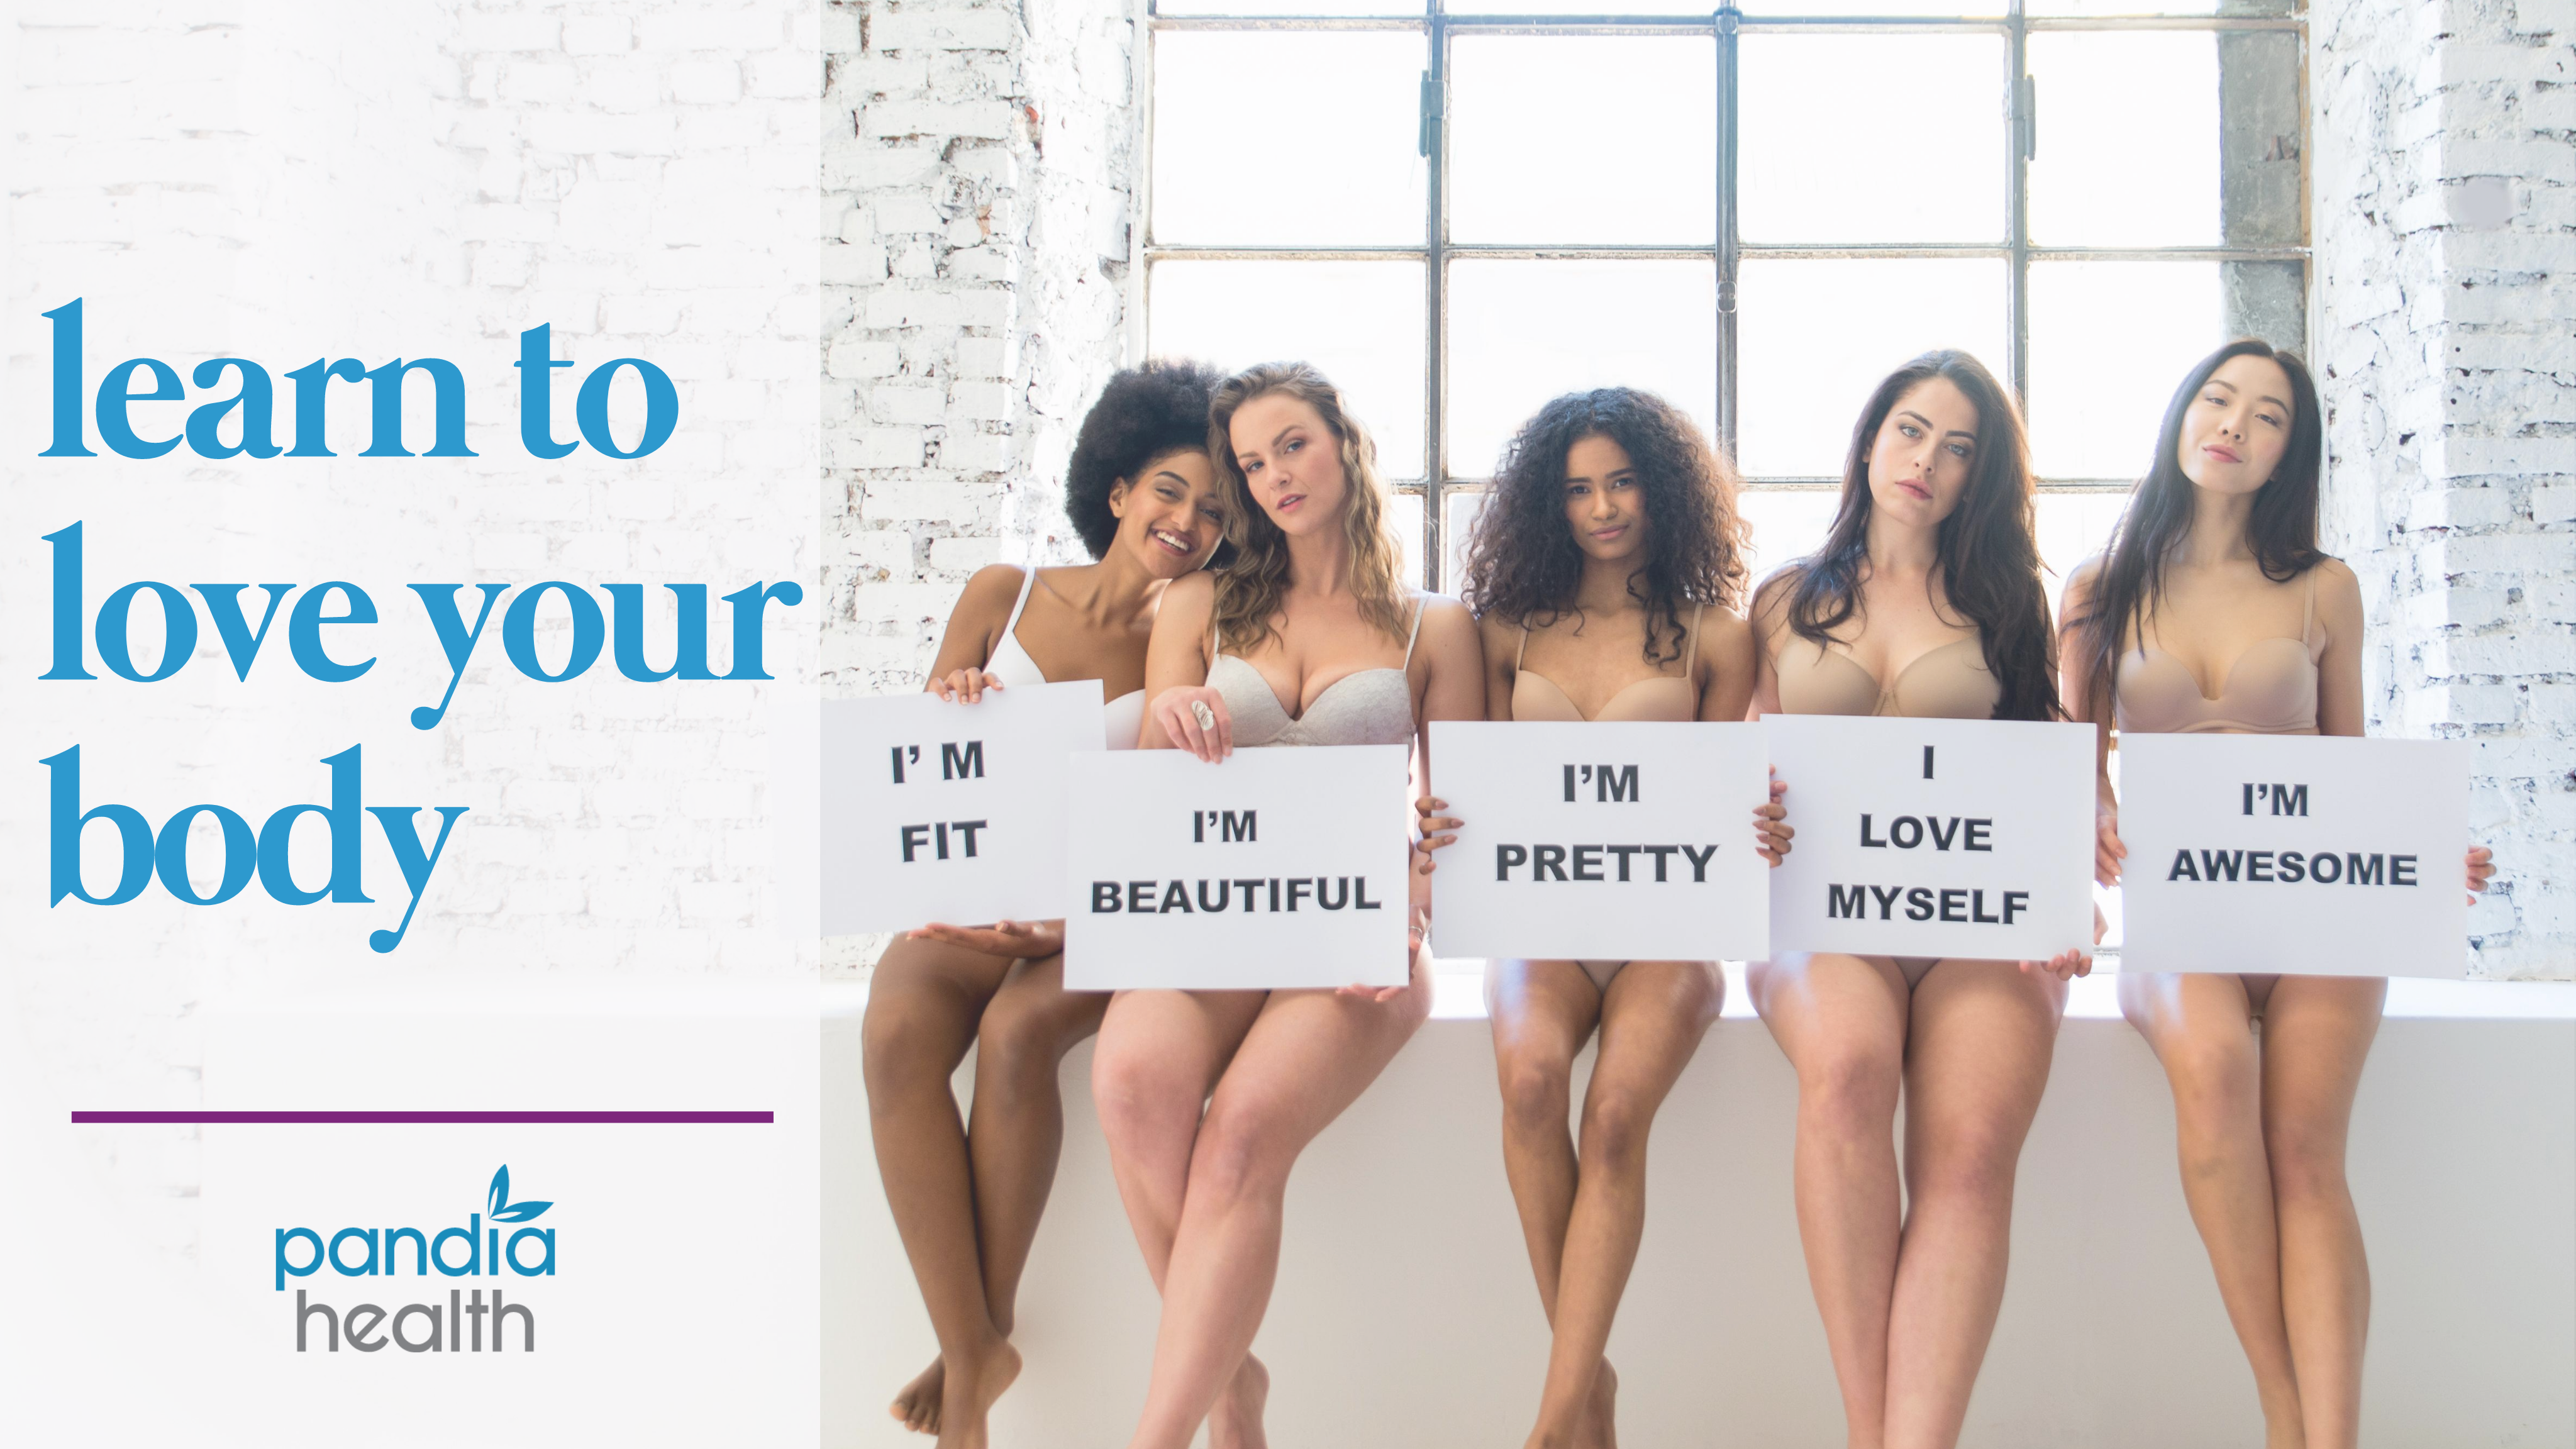 five girls in bras and underwear holding signs promoting body positivity